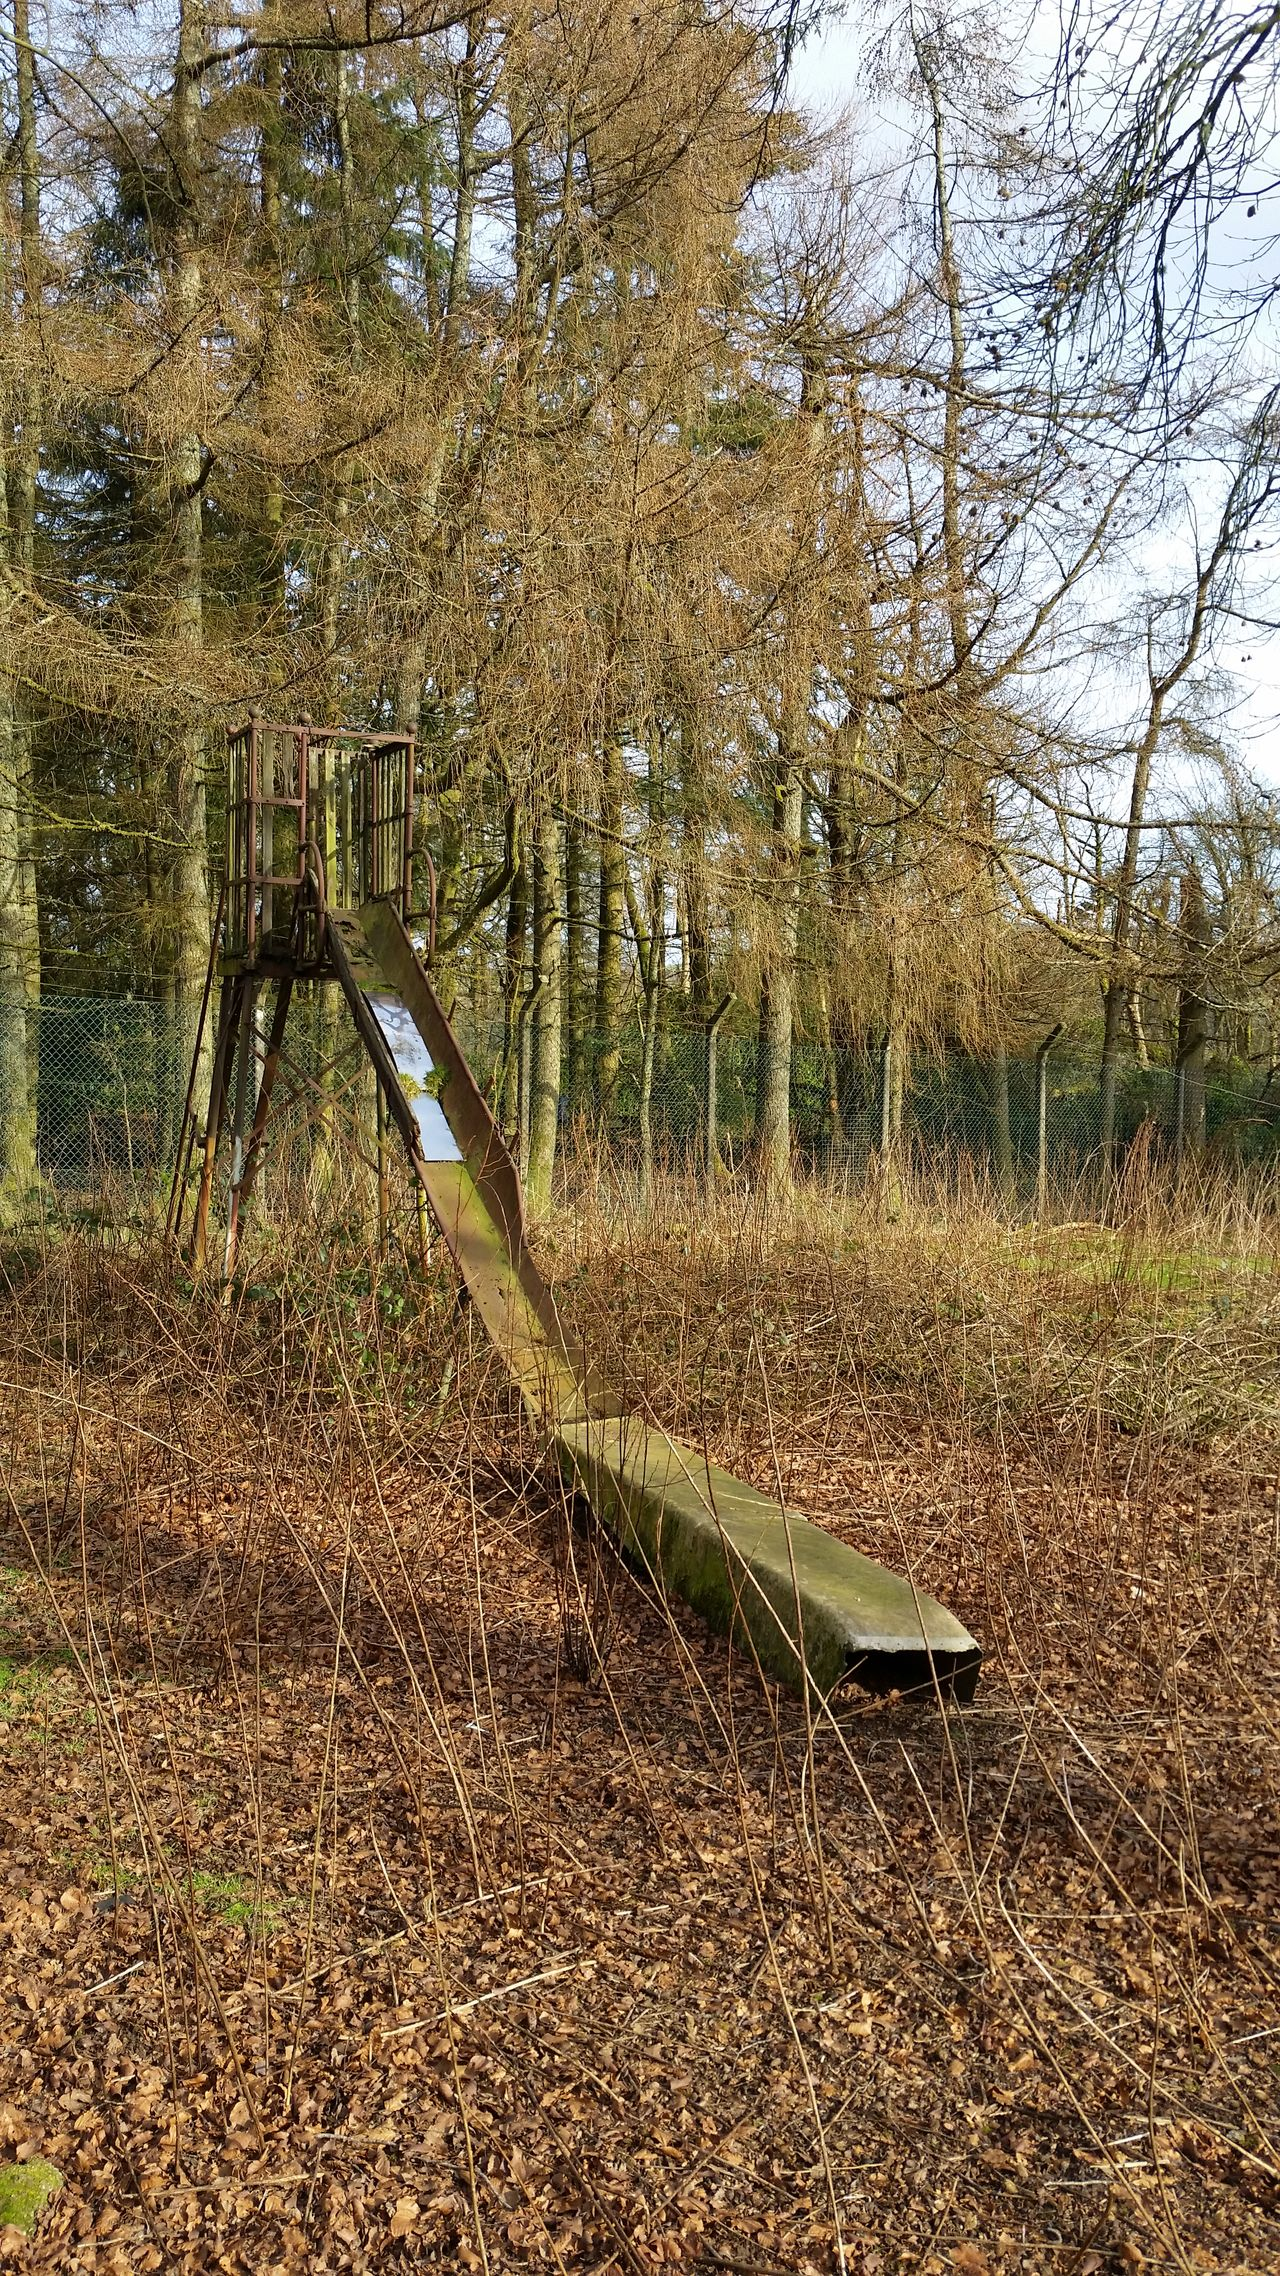 Nature No People Outdoors Beauty In Nature Abandoned & Derelict Abondoned Places Playground Chute